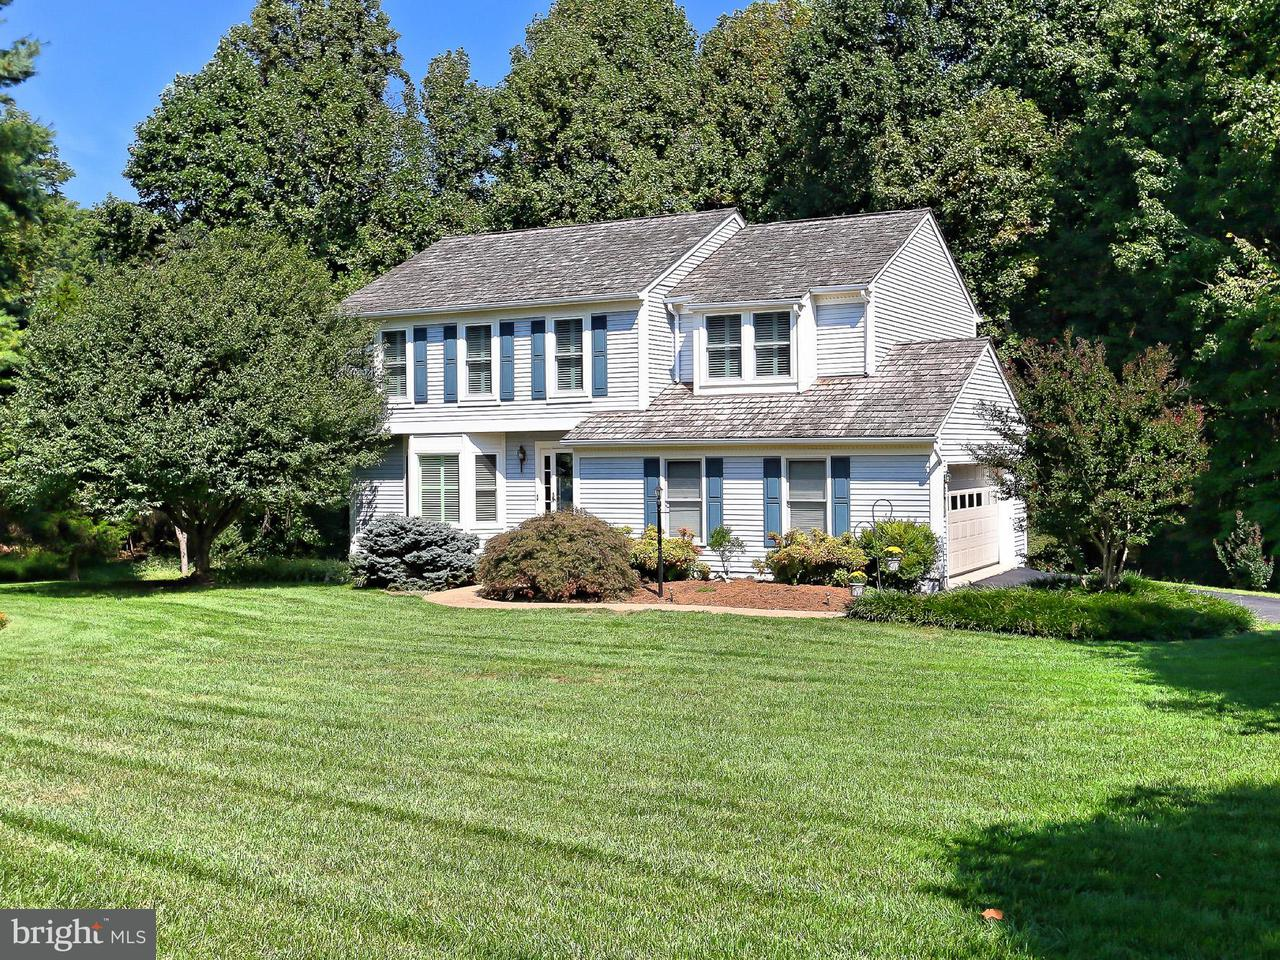 Additional photo for property listing at 6001 Stallion Chase Court 6001 Stallion Chase Court Fairfax, Virginia 22030 Estados Unidos